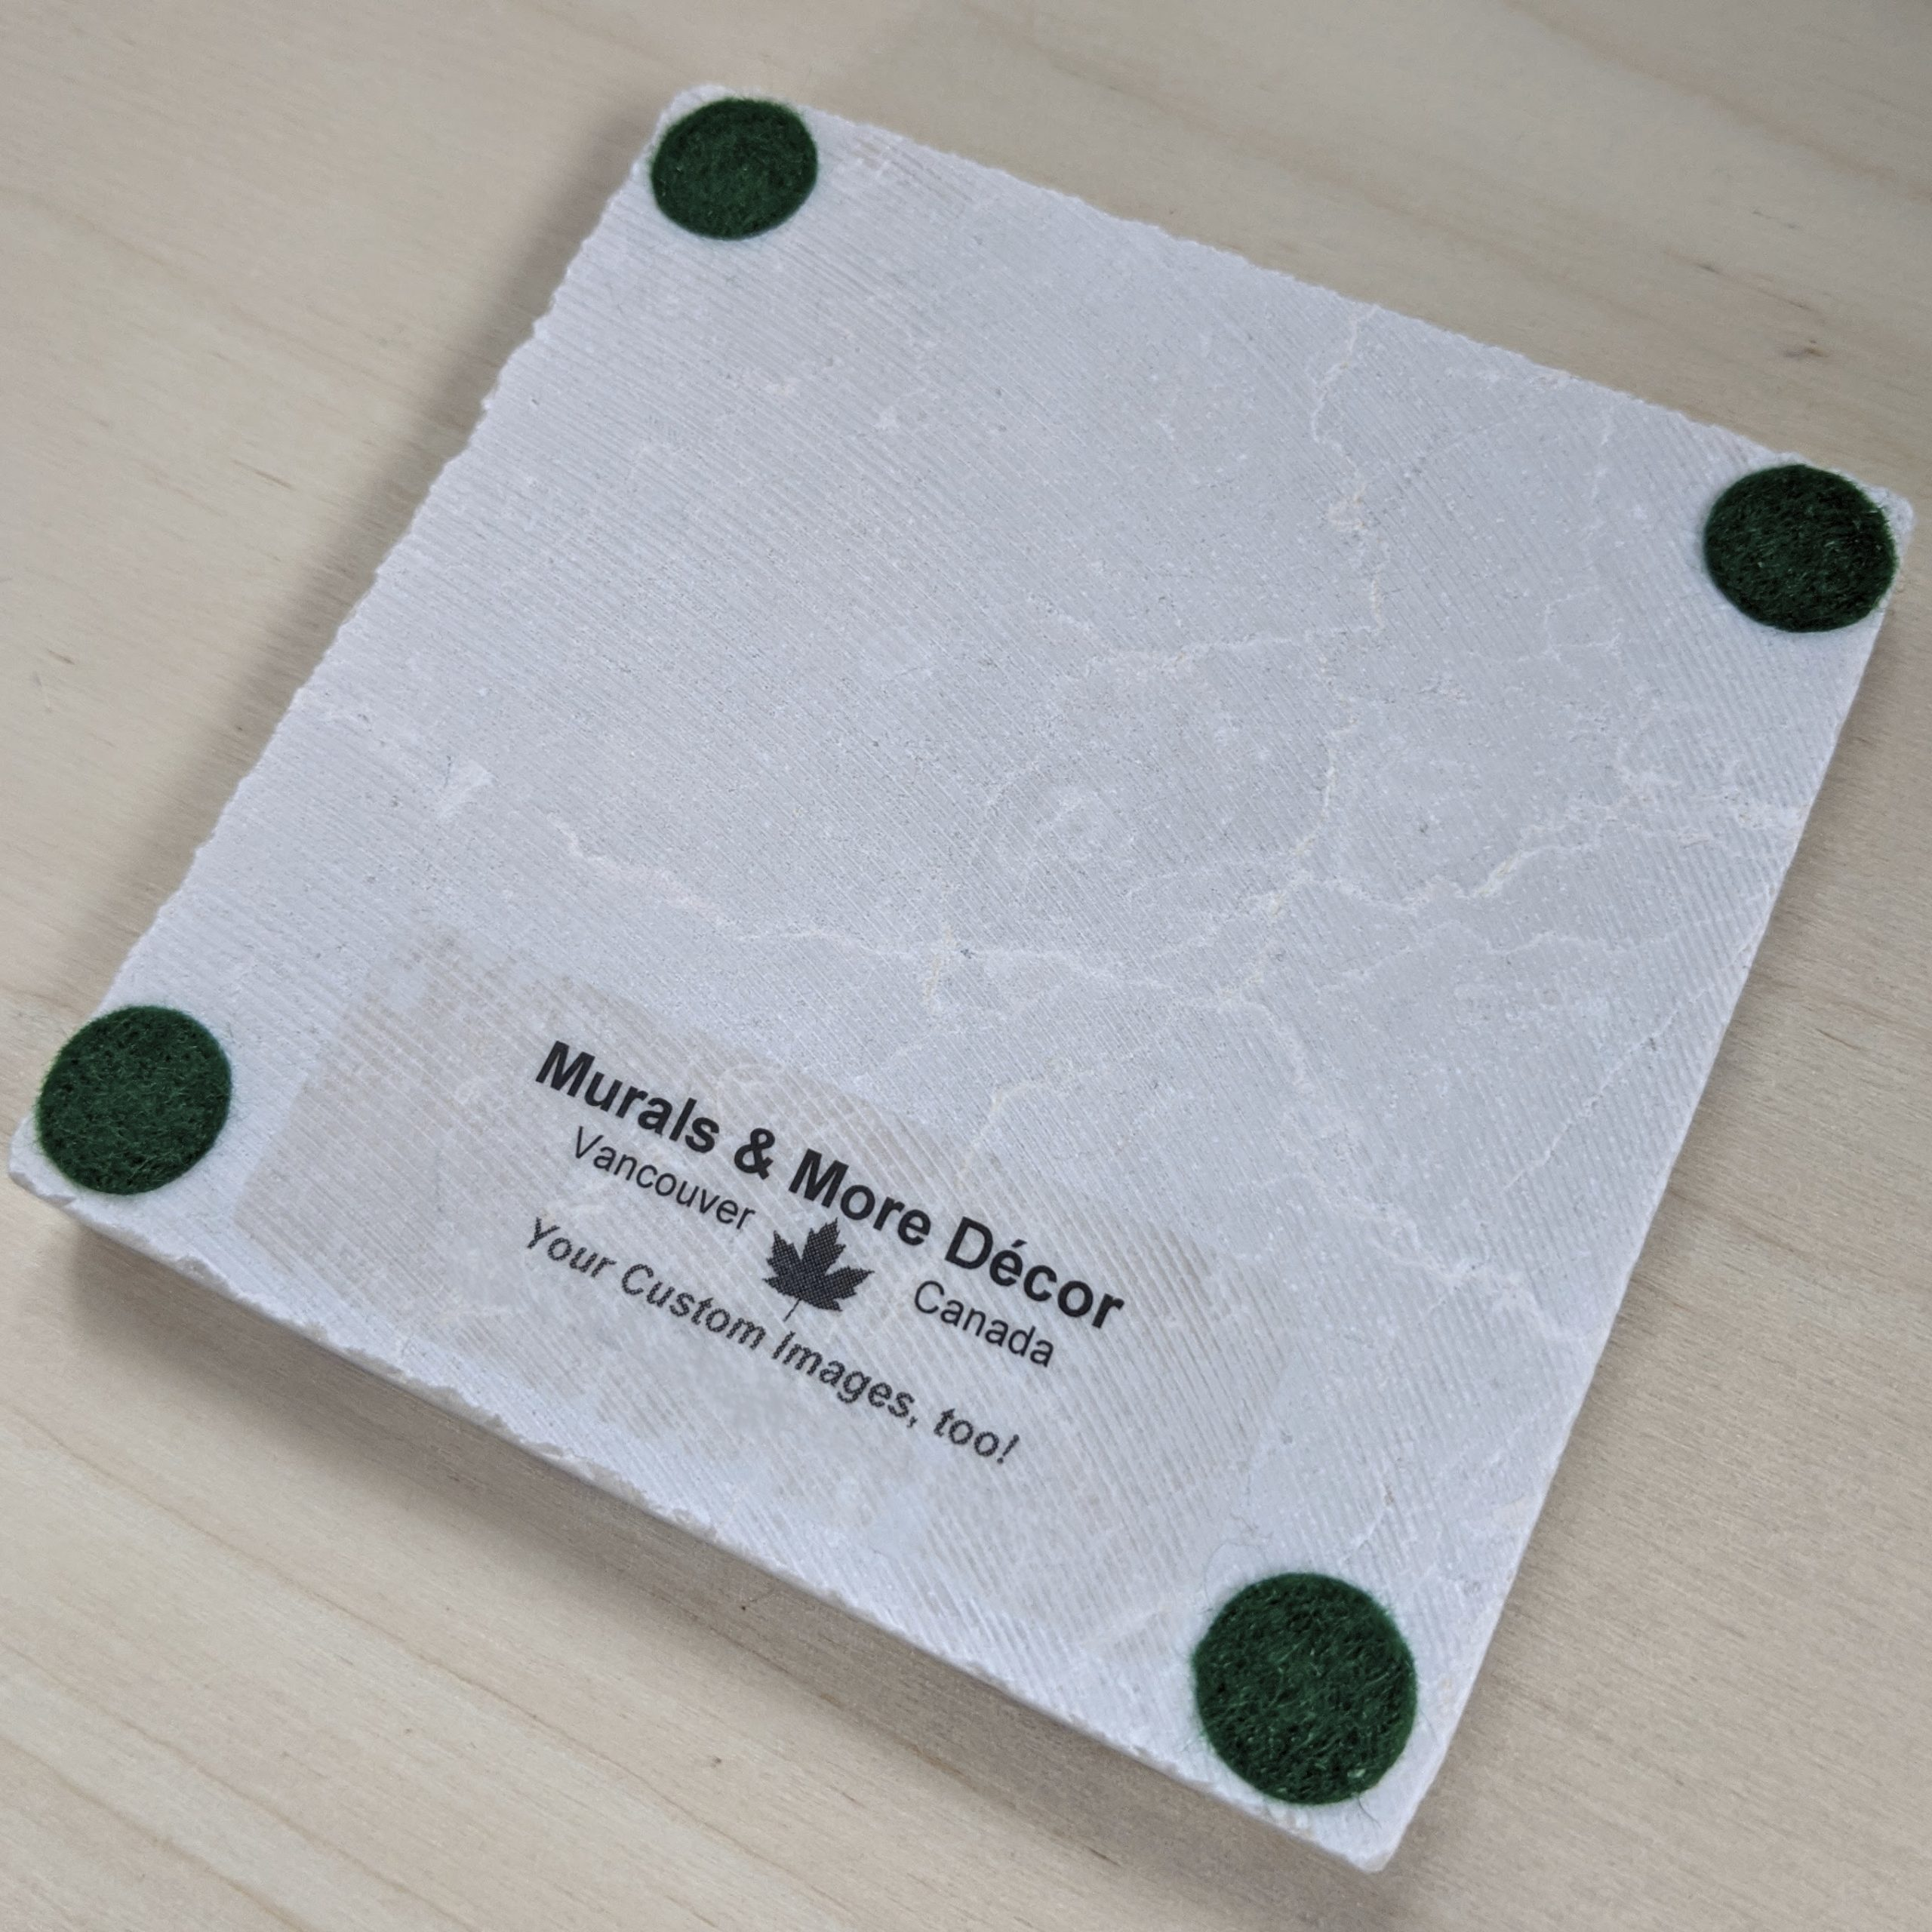 Marble Coaster by Murals and More Decor